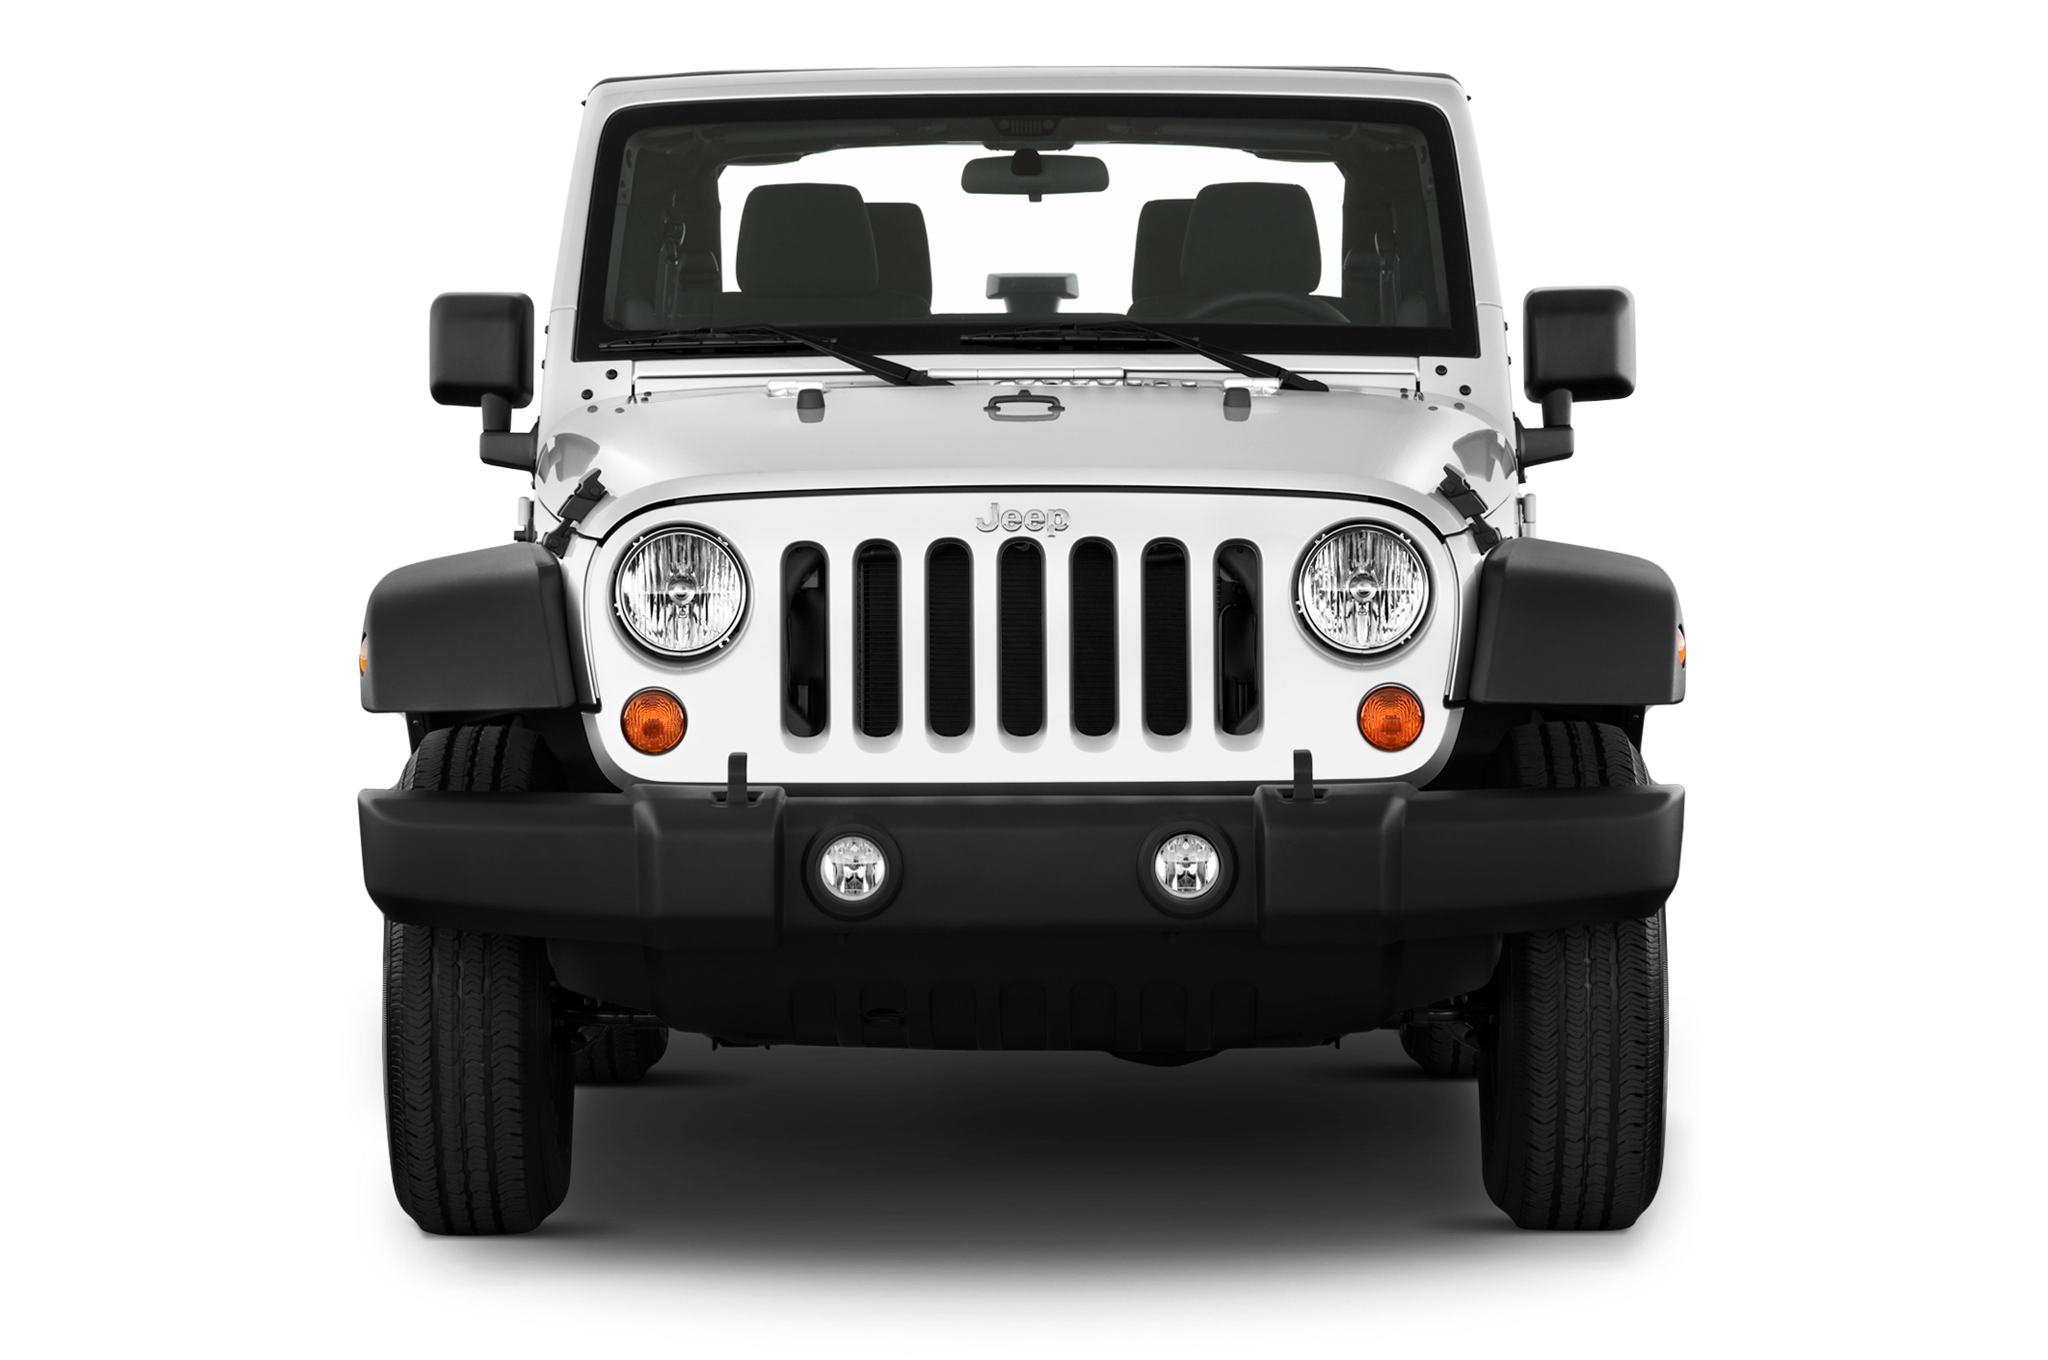 Jeep fers JK 8 Pickup Truck Conversion for Wrangler Priced at $5499